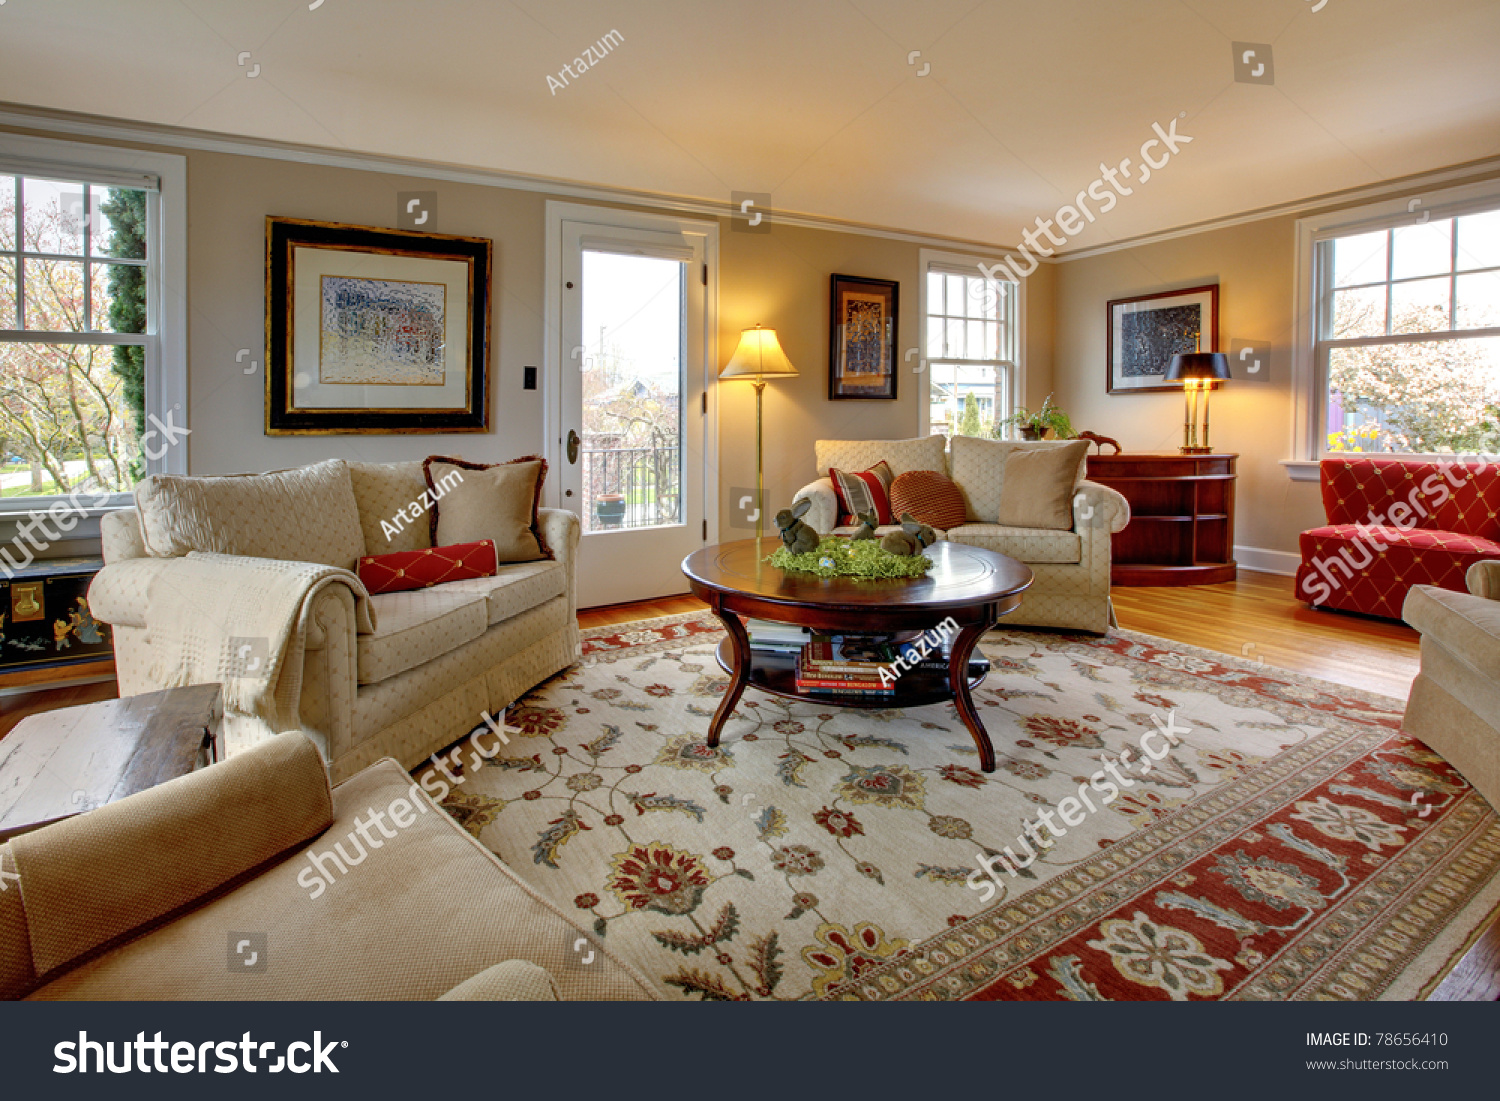 Red And Beige Living Room Cozy Luxury Living Room Beige Red Stock Photo 78656410 Shutterstock